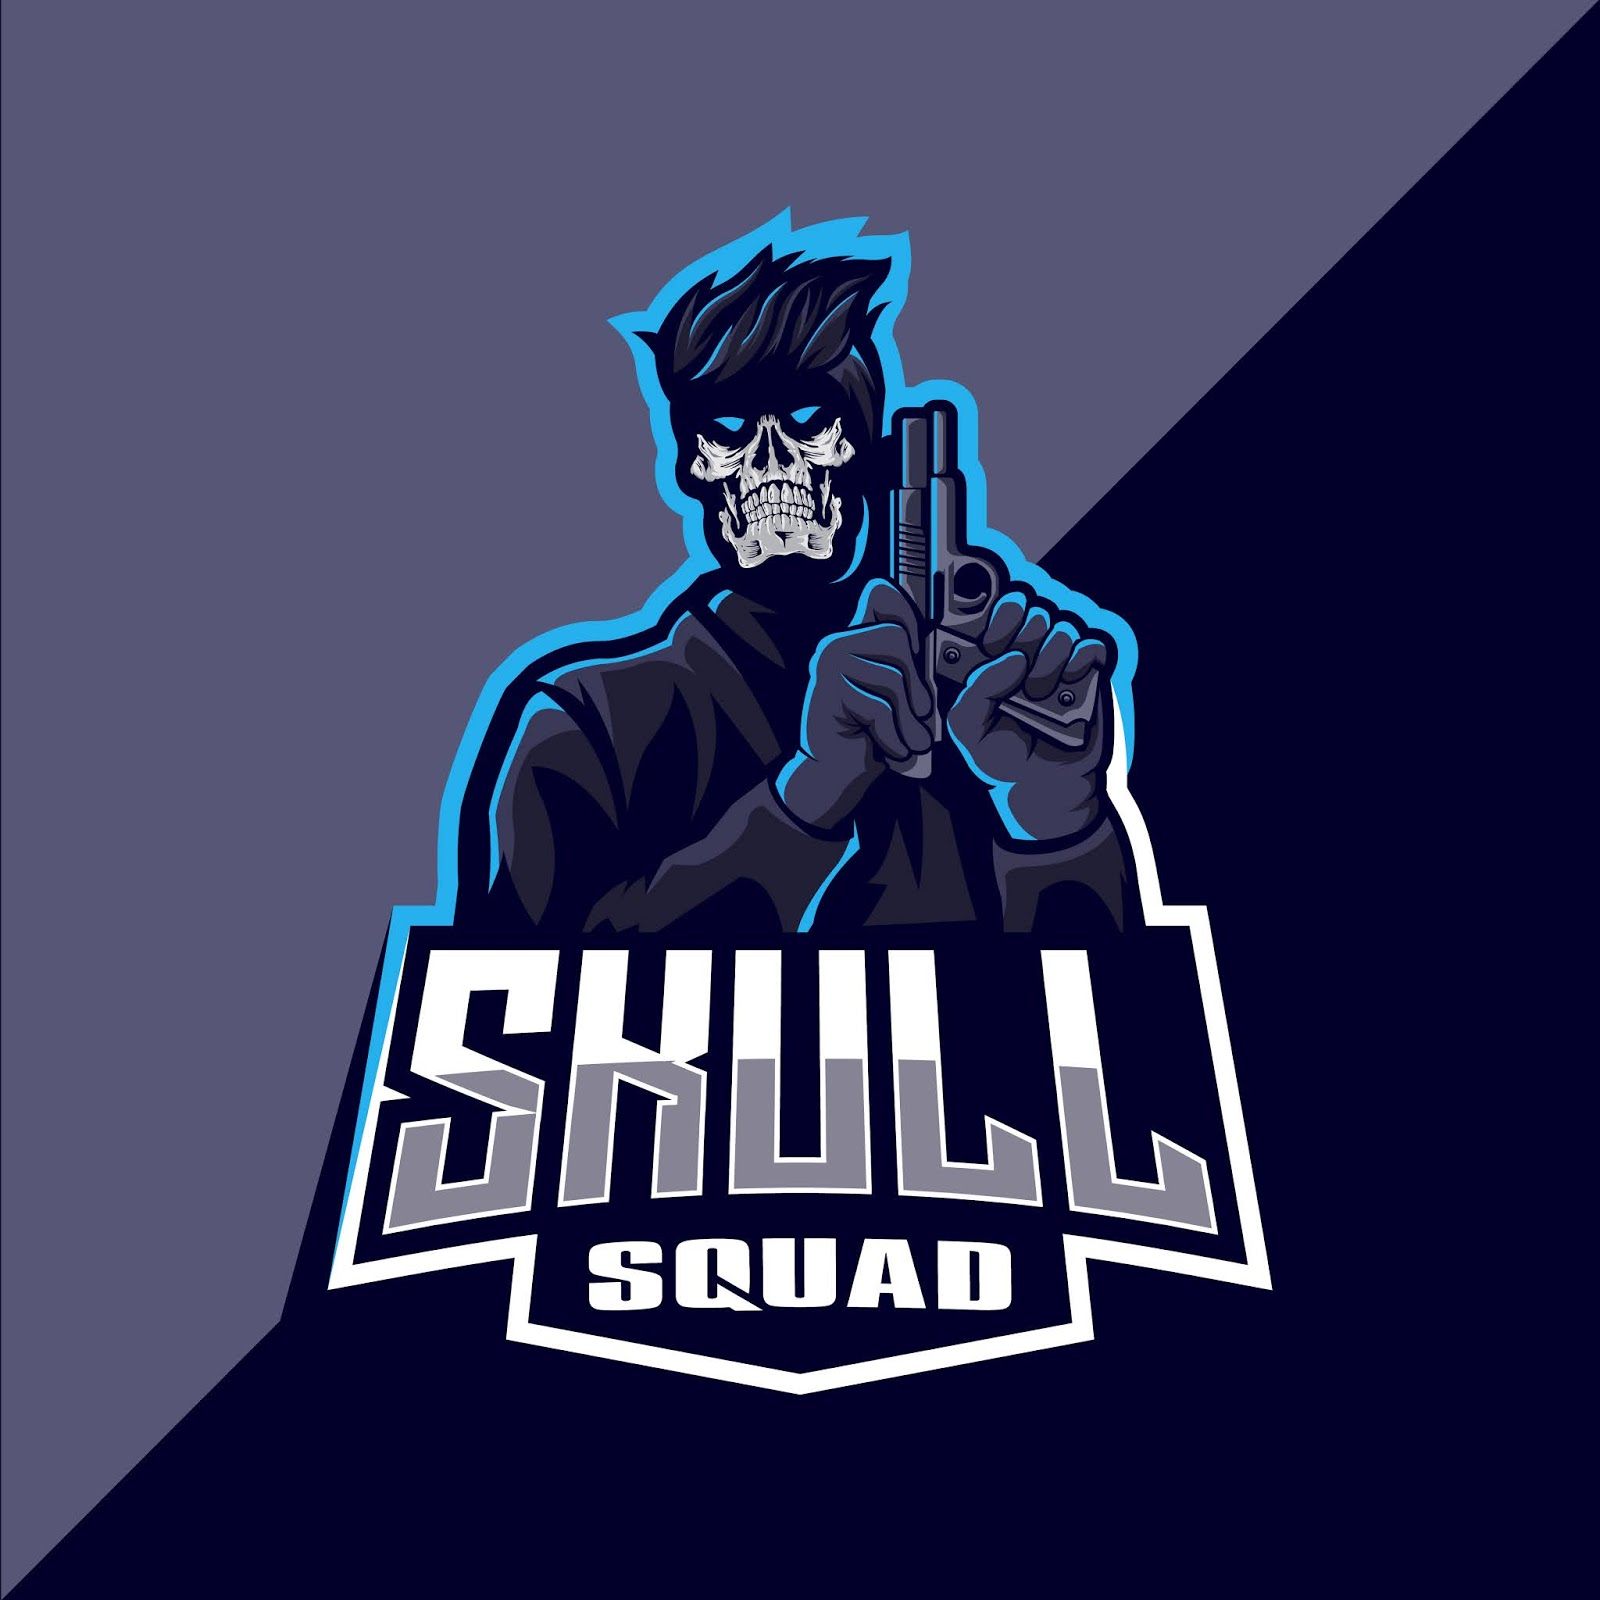 Skull With Gun Mascot Esport Logo Free Download Vector CDR, AI, EPS and PNG Formats